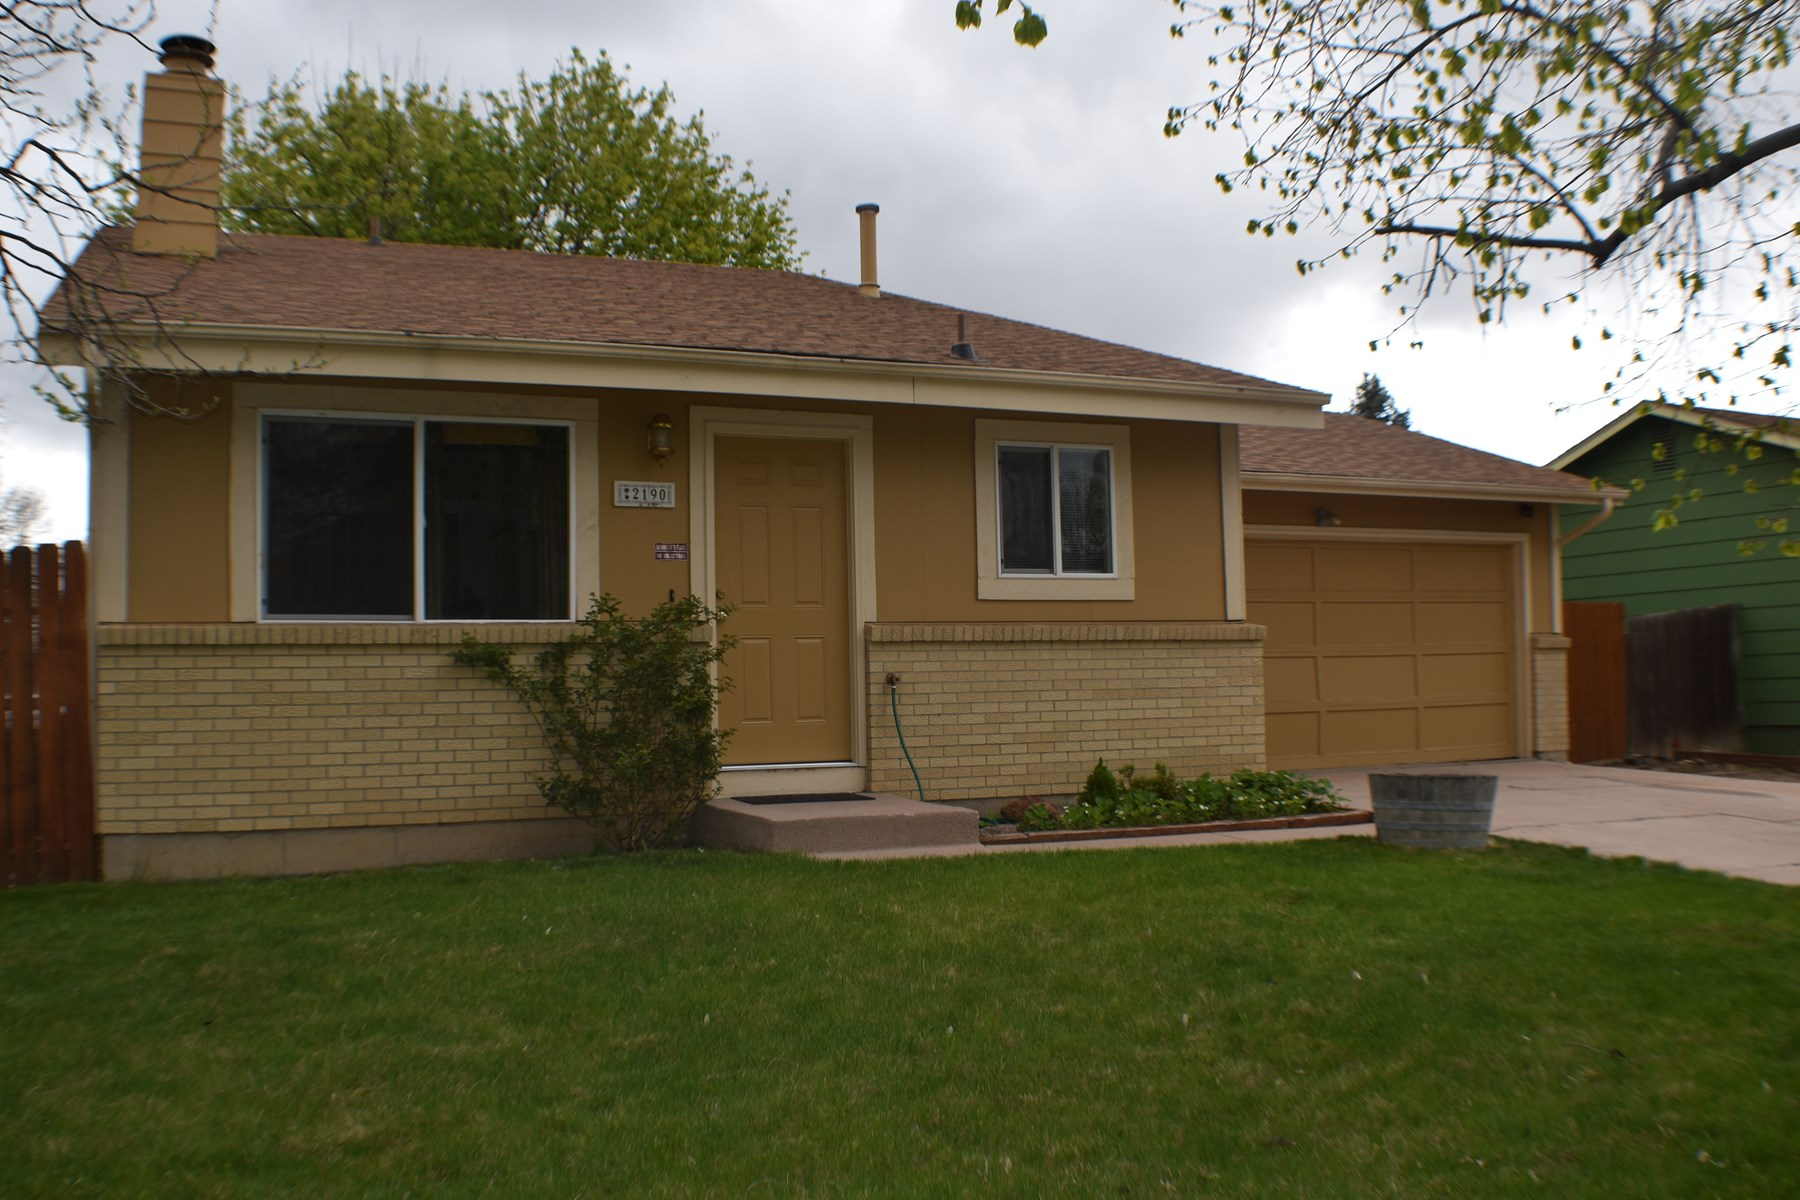 House for Sale in Colorado Springs